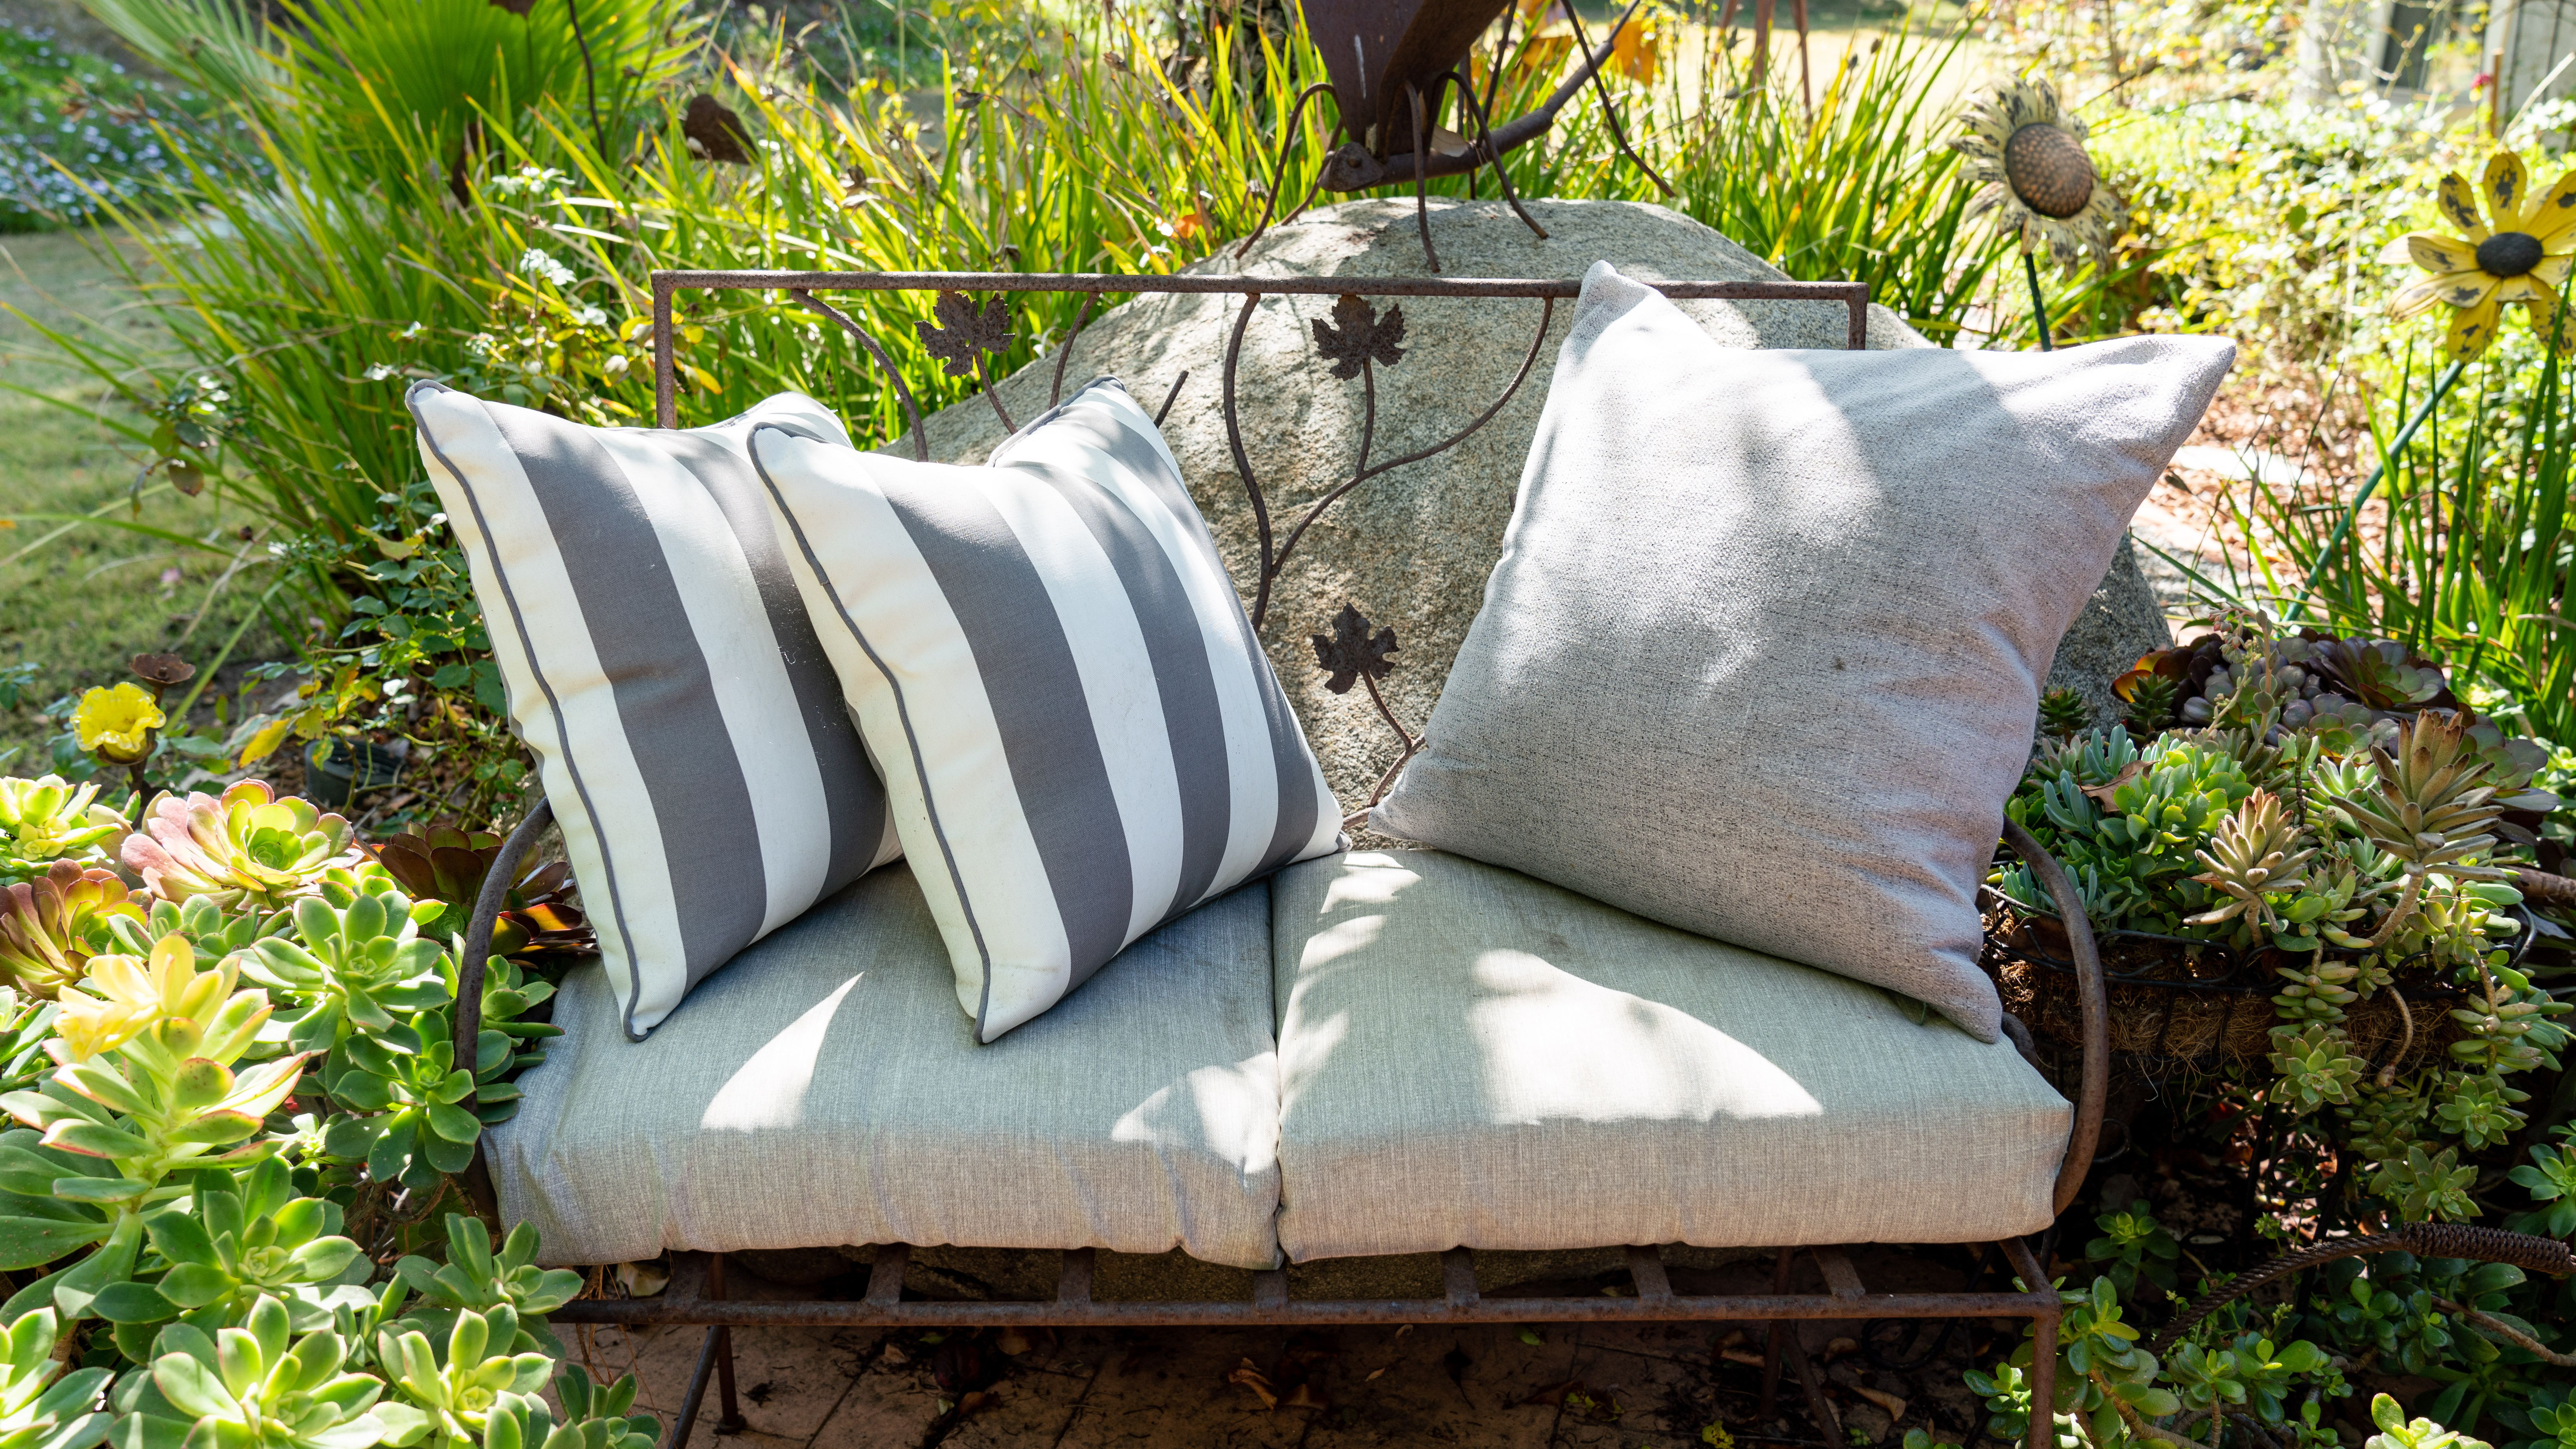 Clean Outdoor Cushions And Fabric Furniture, Can Outdoor Seat Cushions Get Wet